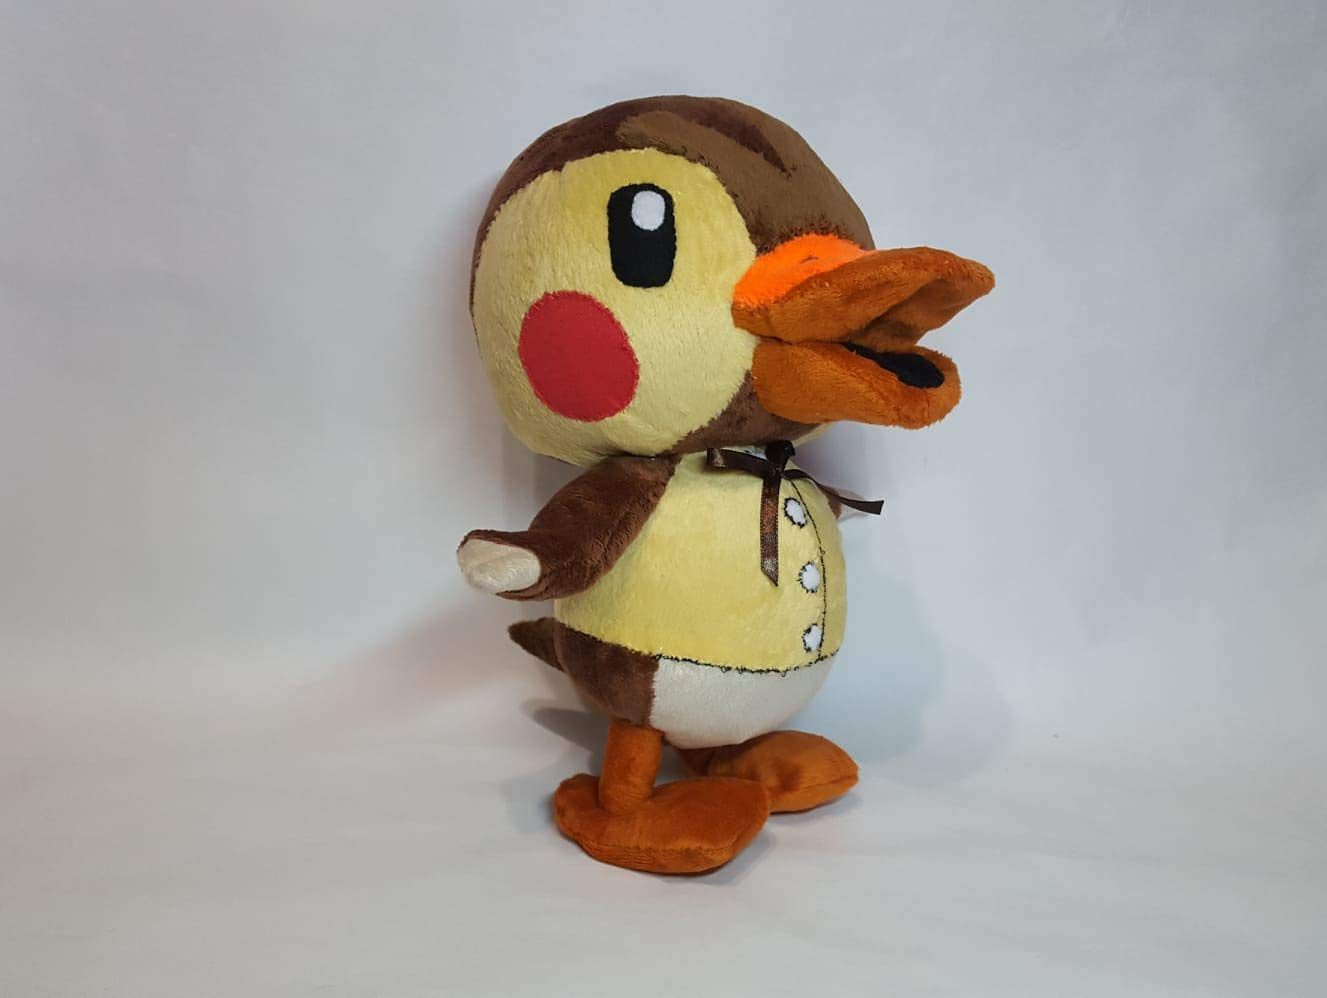 Custom toy inspired by Molly from Animal crossing Duck plush made to order 30 cm minky